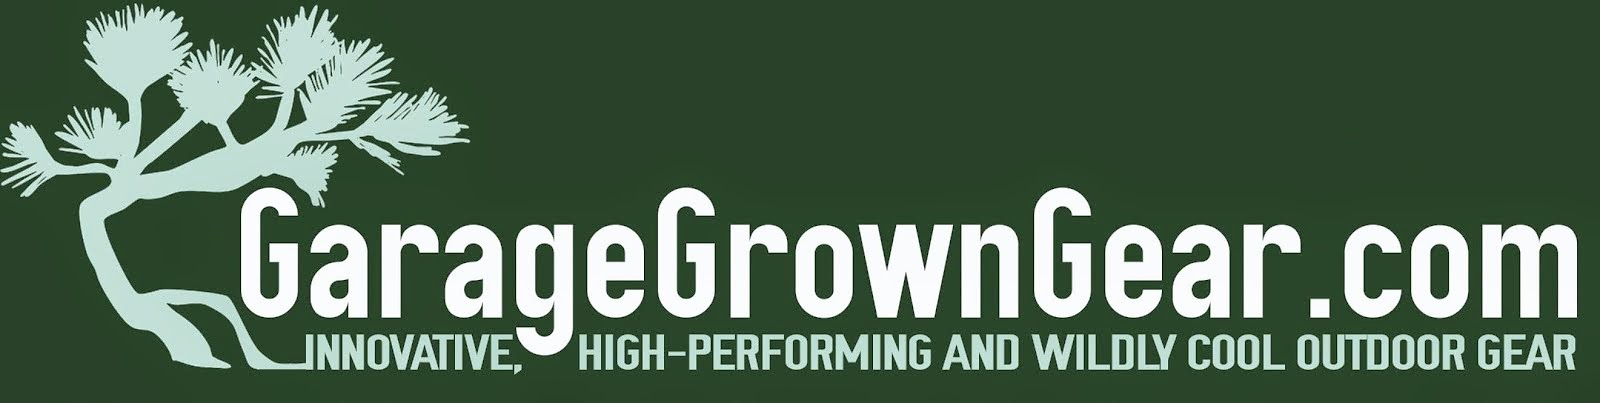 GarageGrownGear